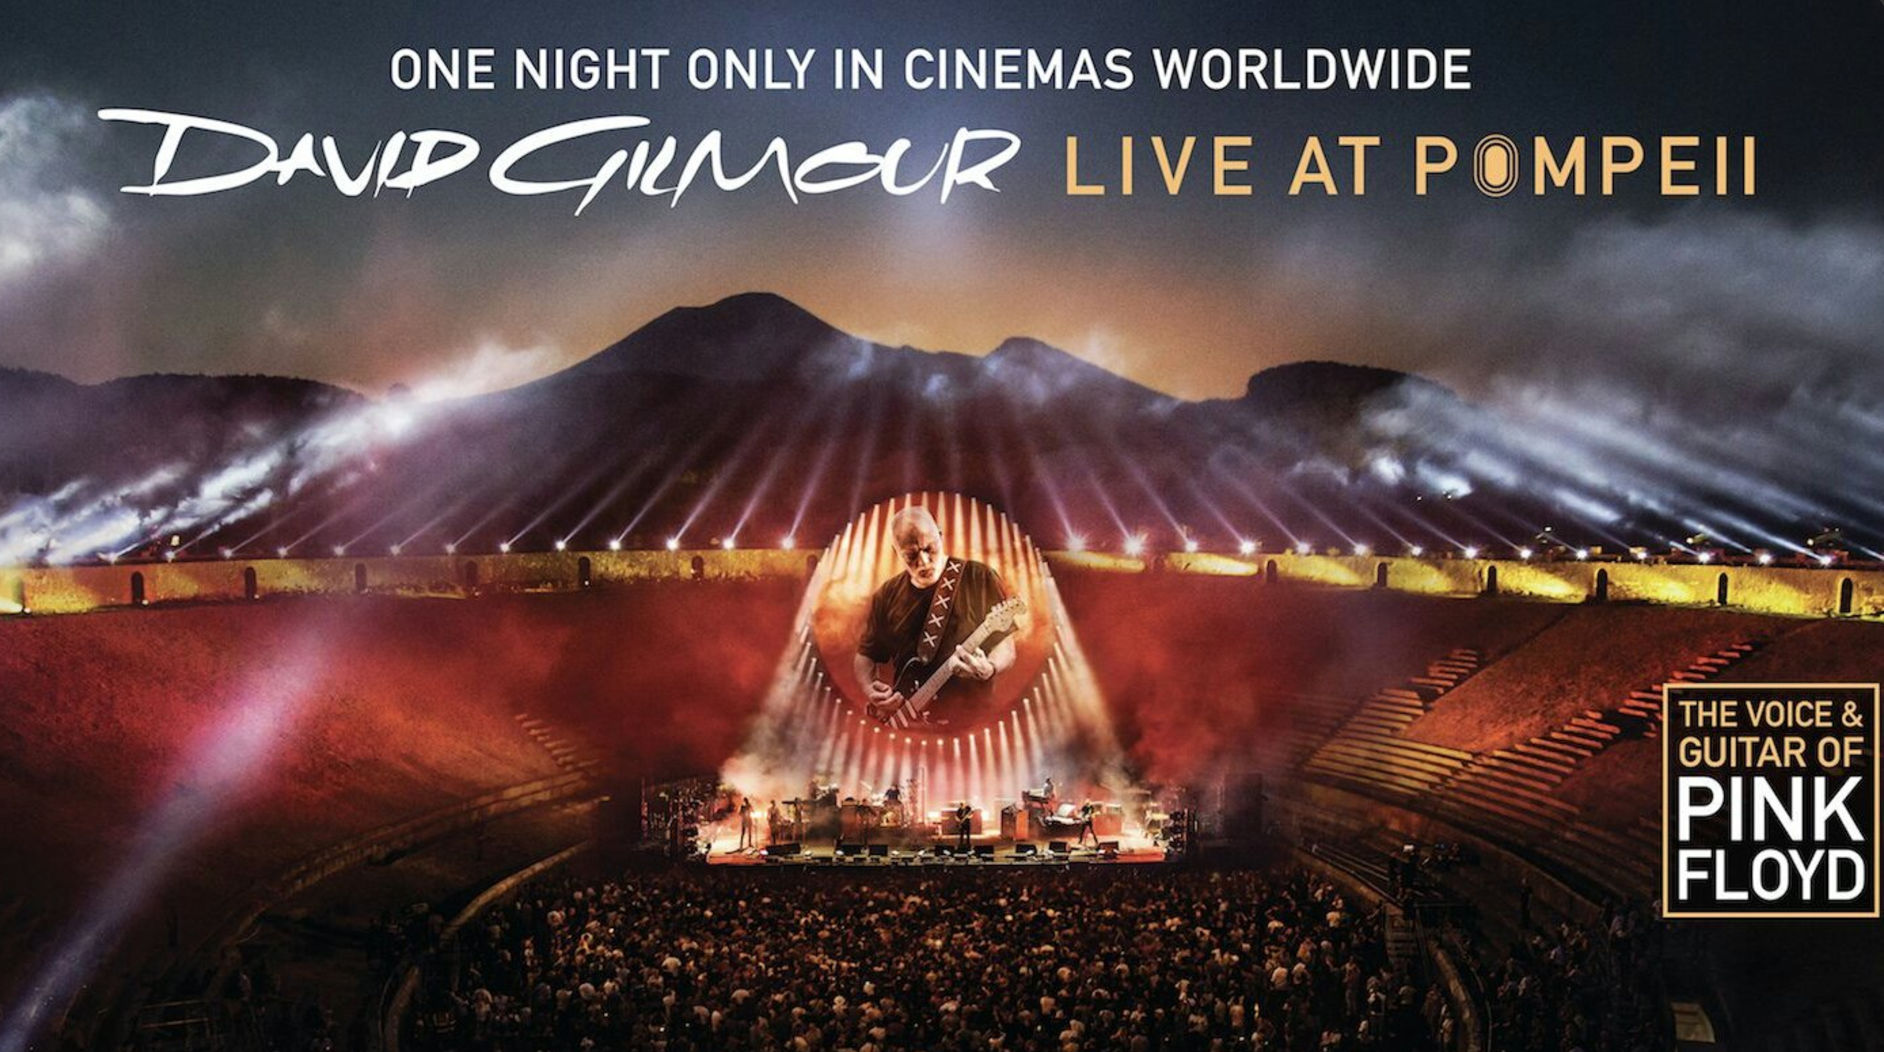 David Gilmour to screen 'Live at Pompeii' in theaters